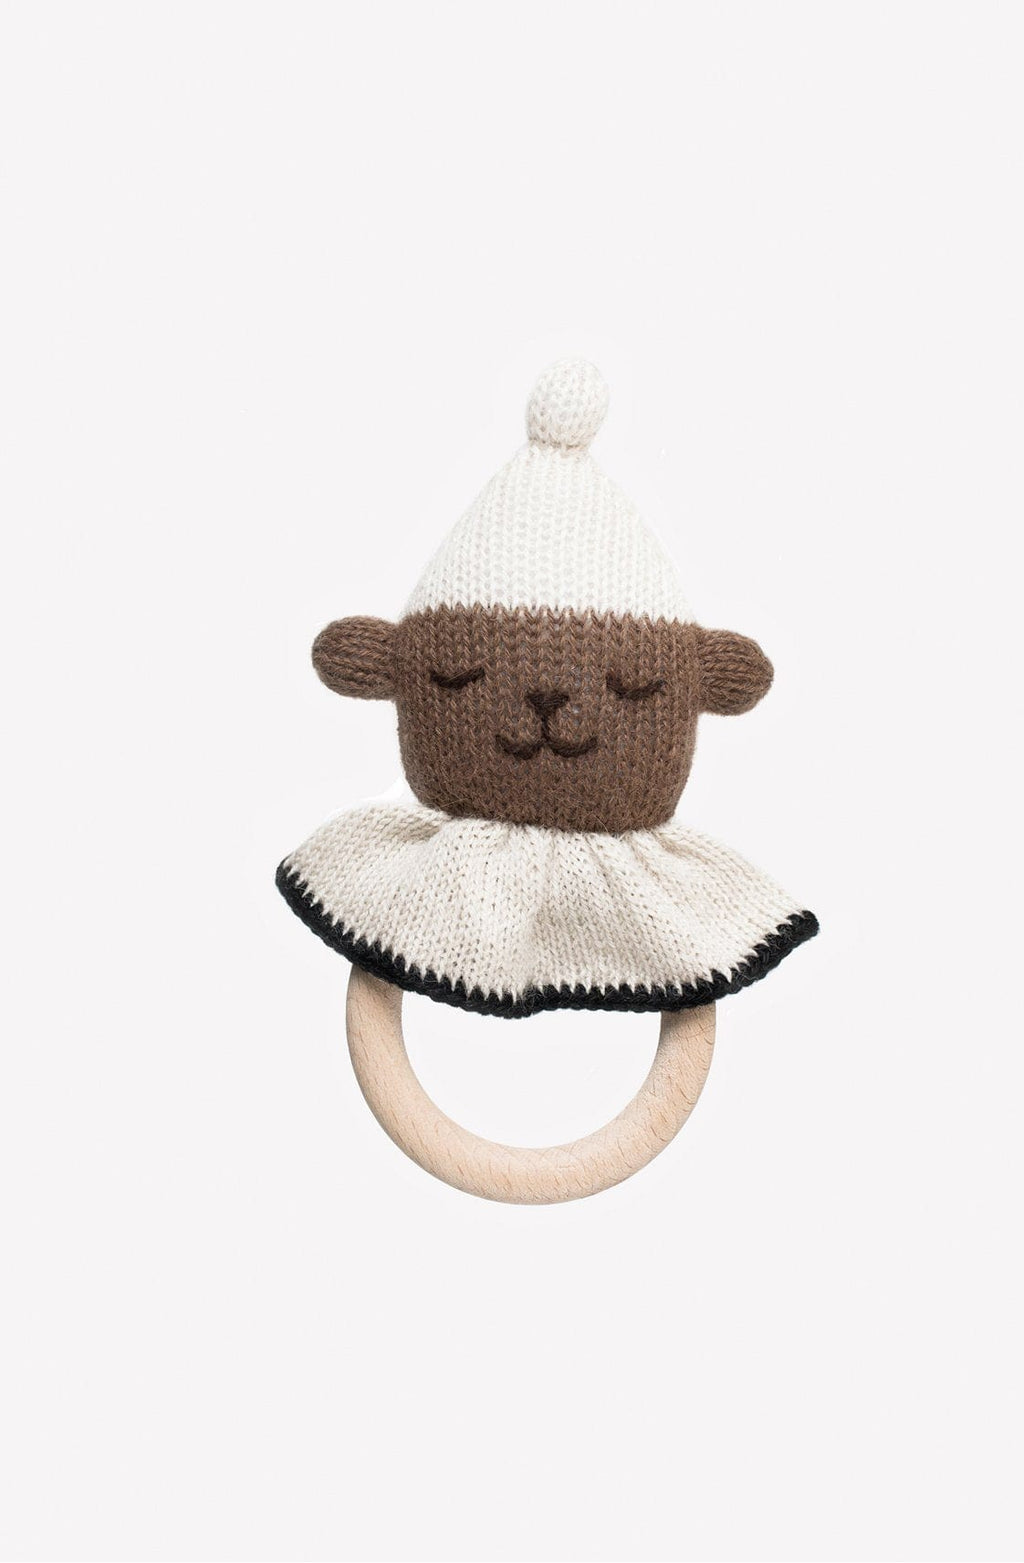 Main Sauvage Teething Ring, Teddy Bear (PRE-ORDER NOV) - Hello Little Birdie